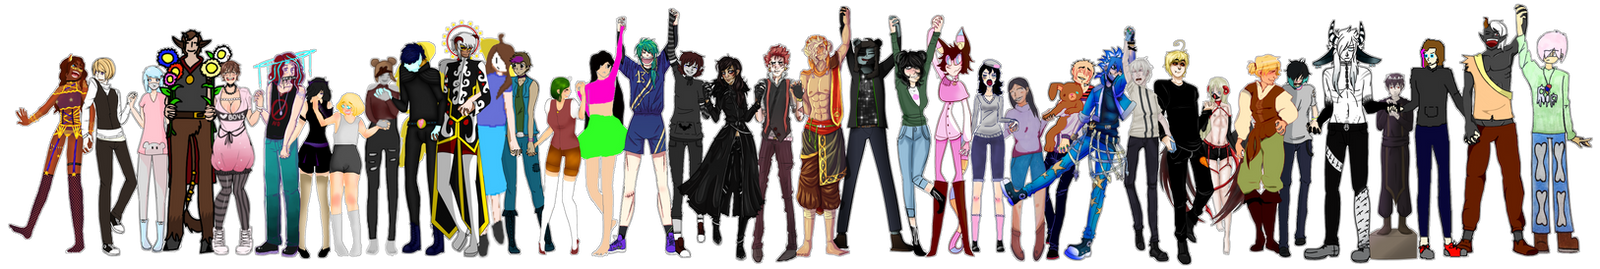 Collab OC Group [April Edition] (by MrGlitter) by G4CEsz-Artique